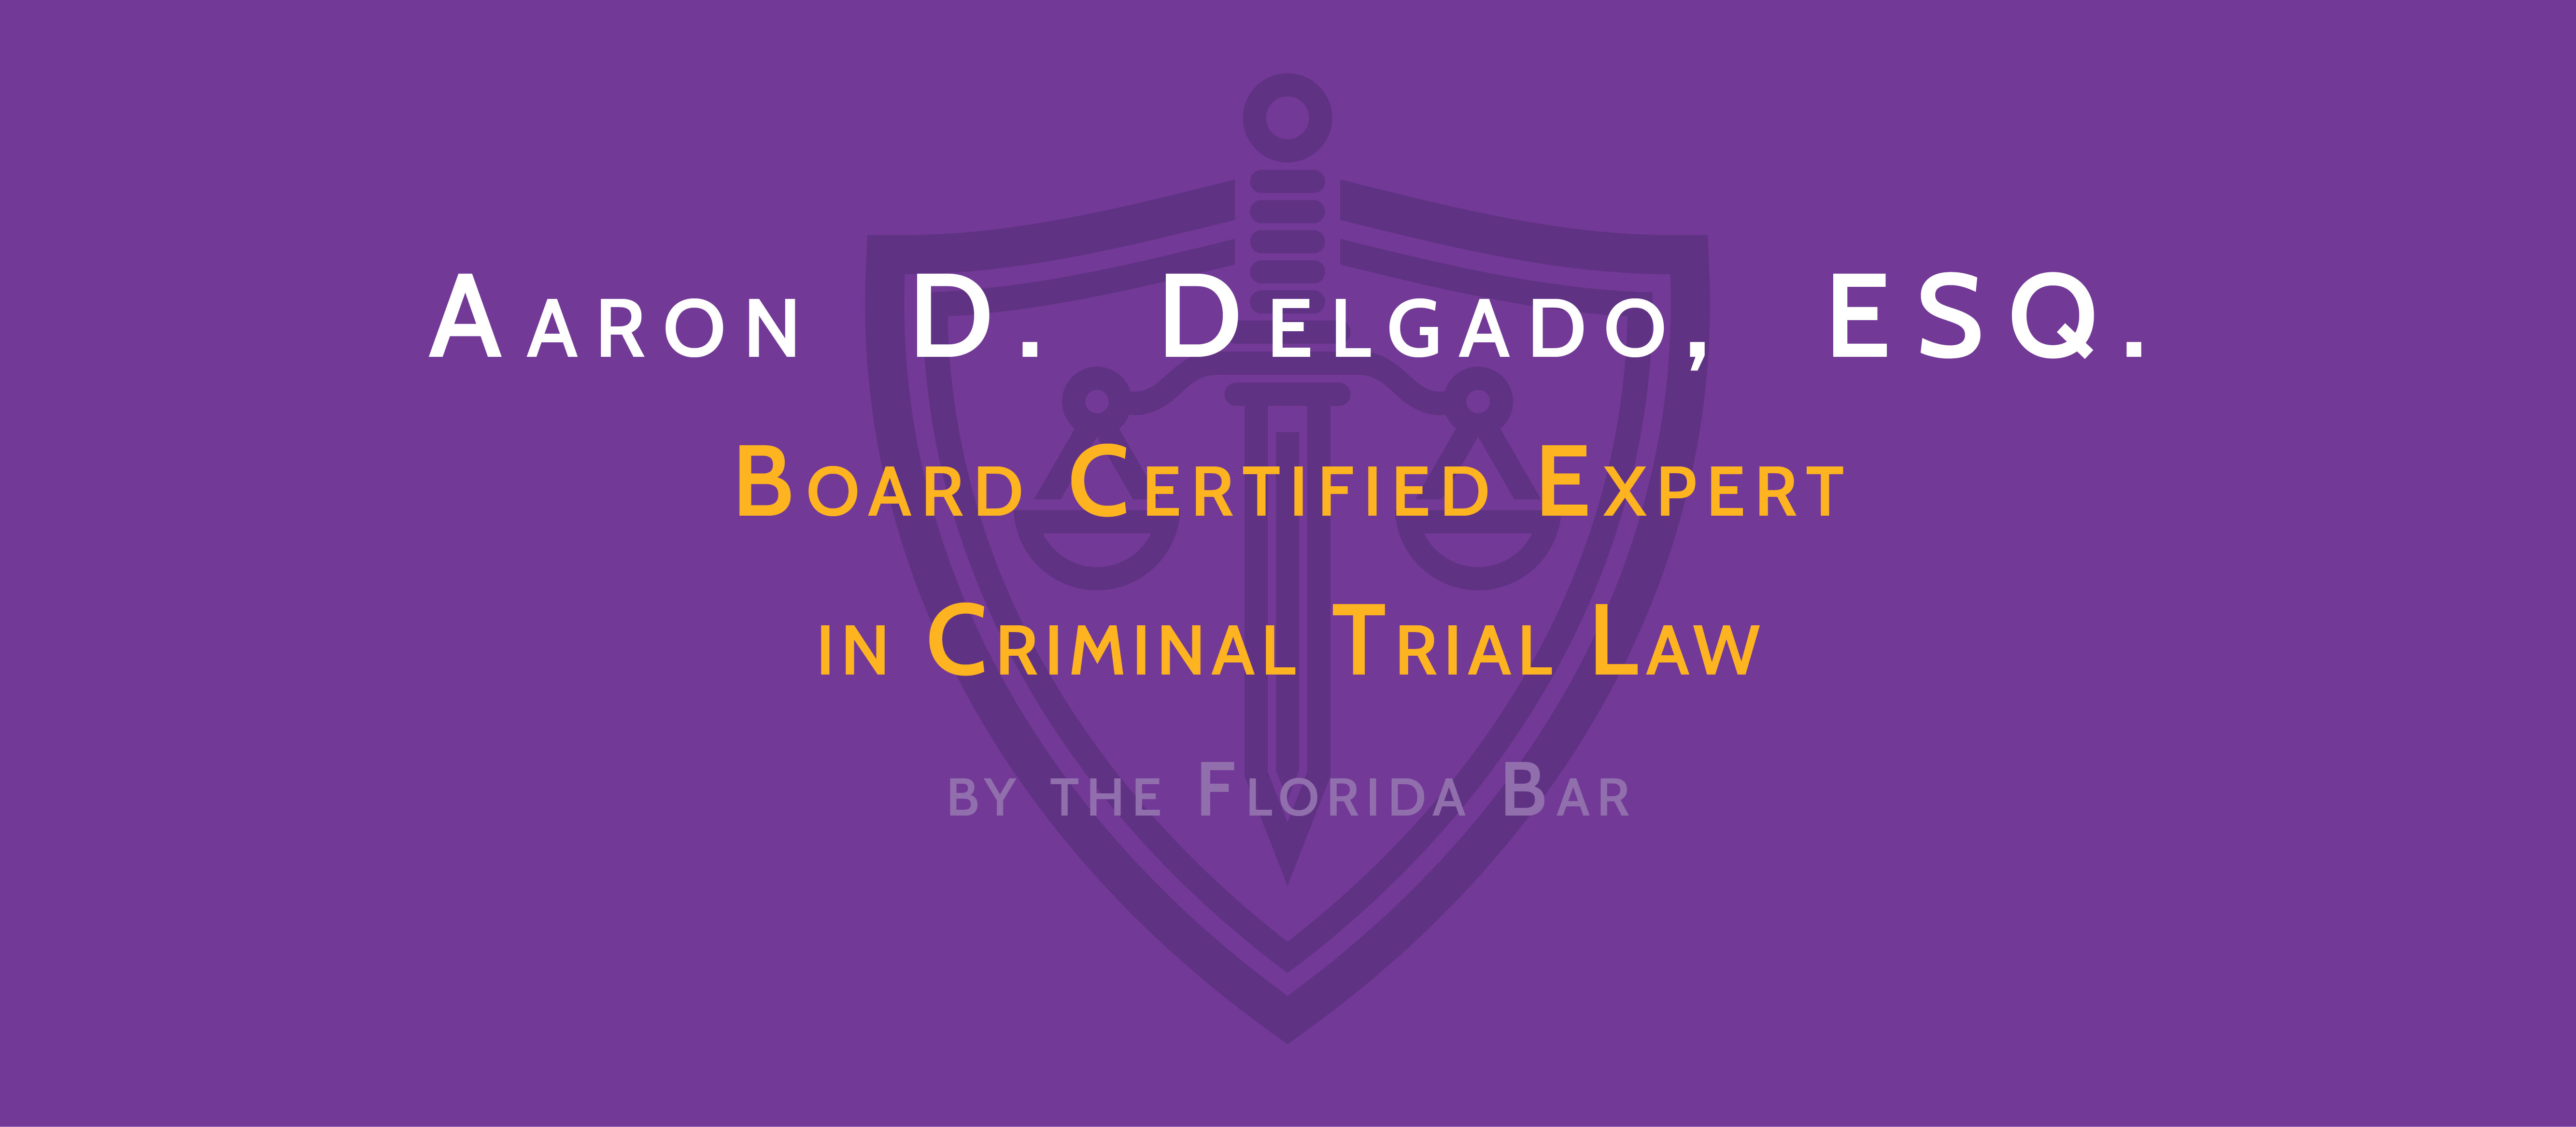 Aaron Delgado - Board Certified Expert in Criminal Trial Law by the Florida Bar